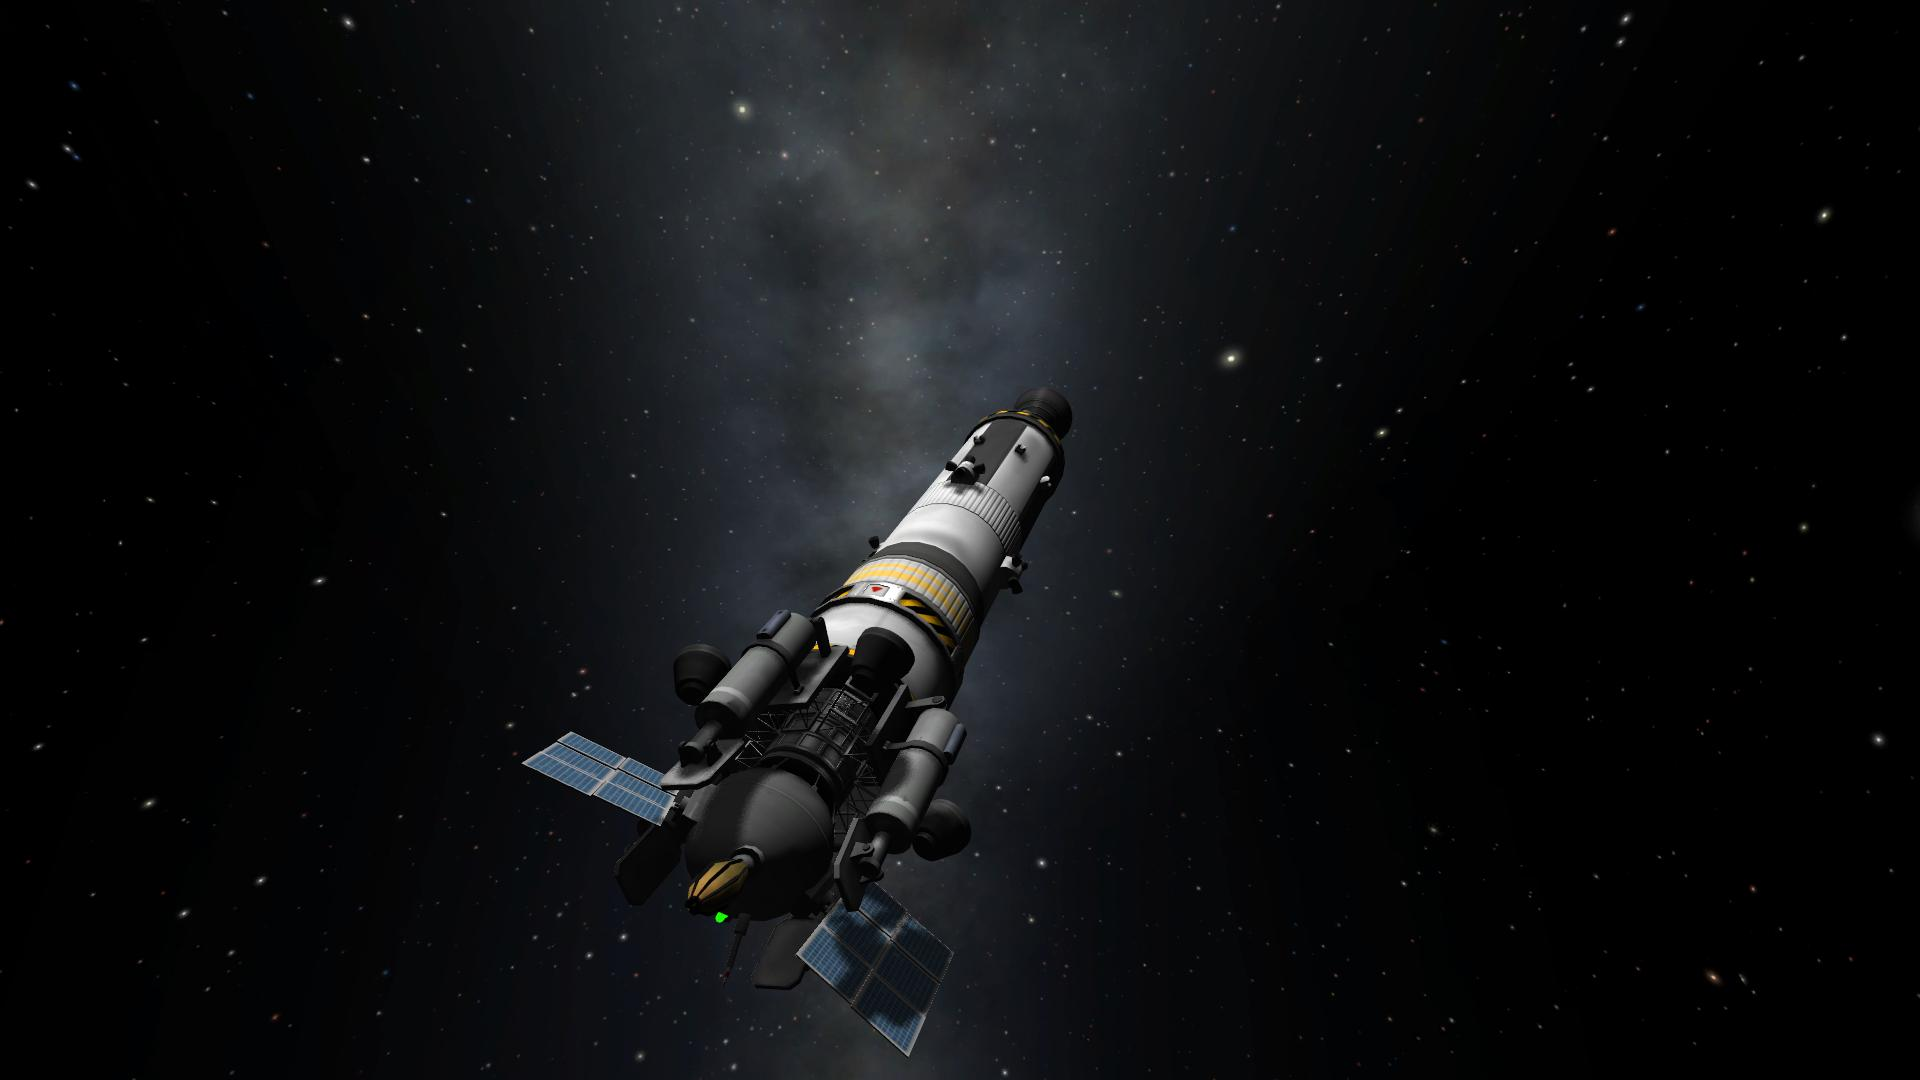 My Mission To The Moon A Kerbal Space Program Adventure